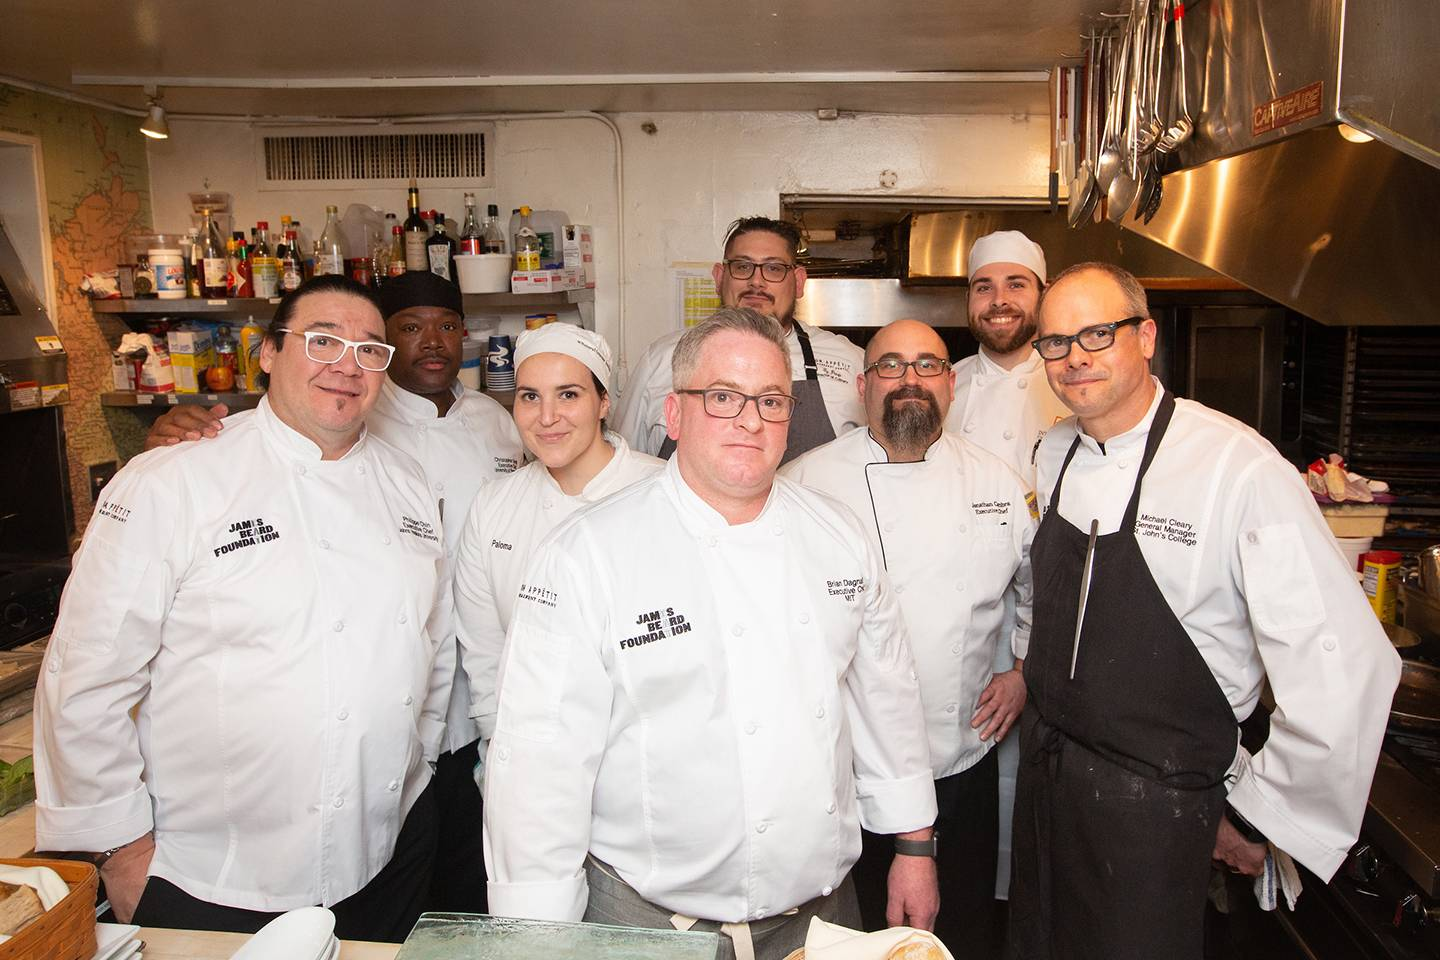 Chefs pose for a photo